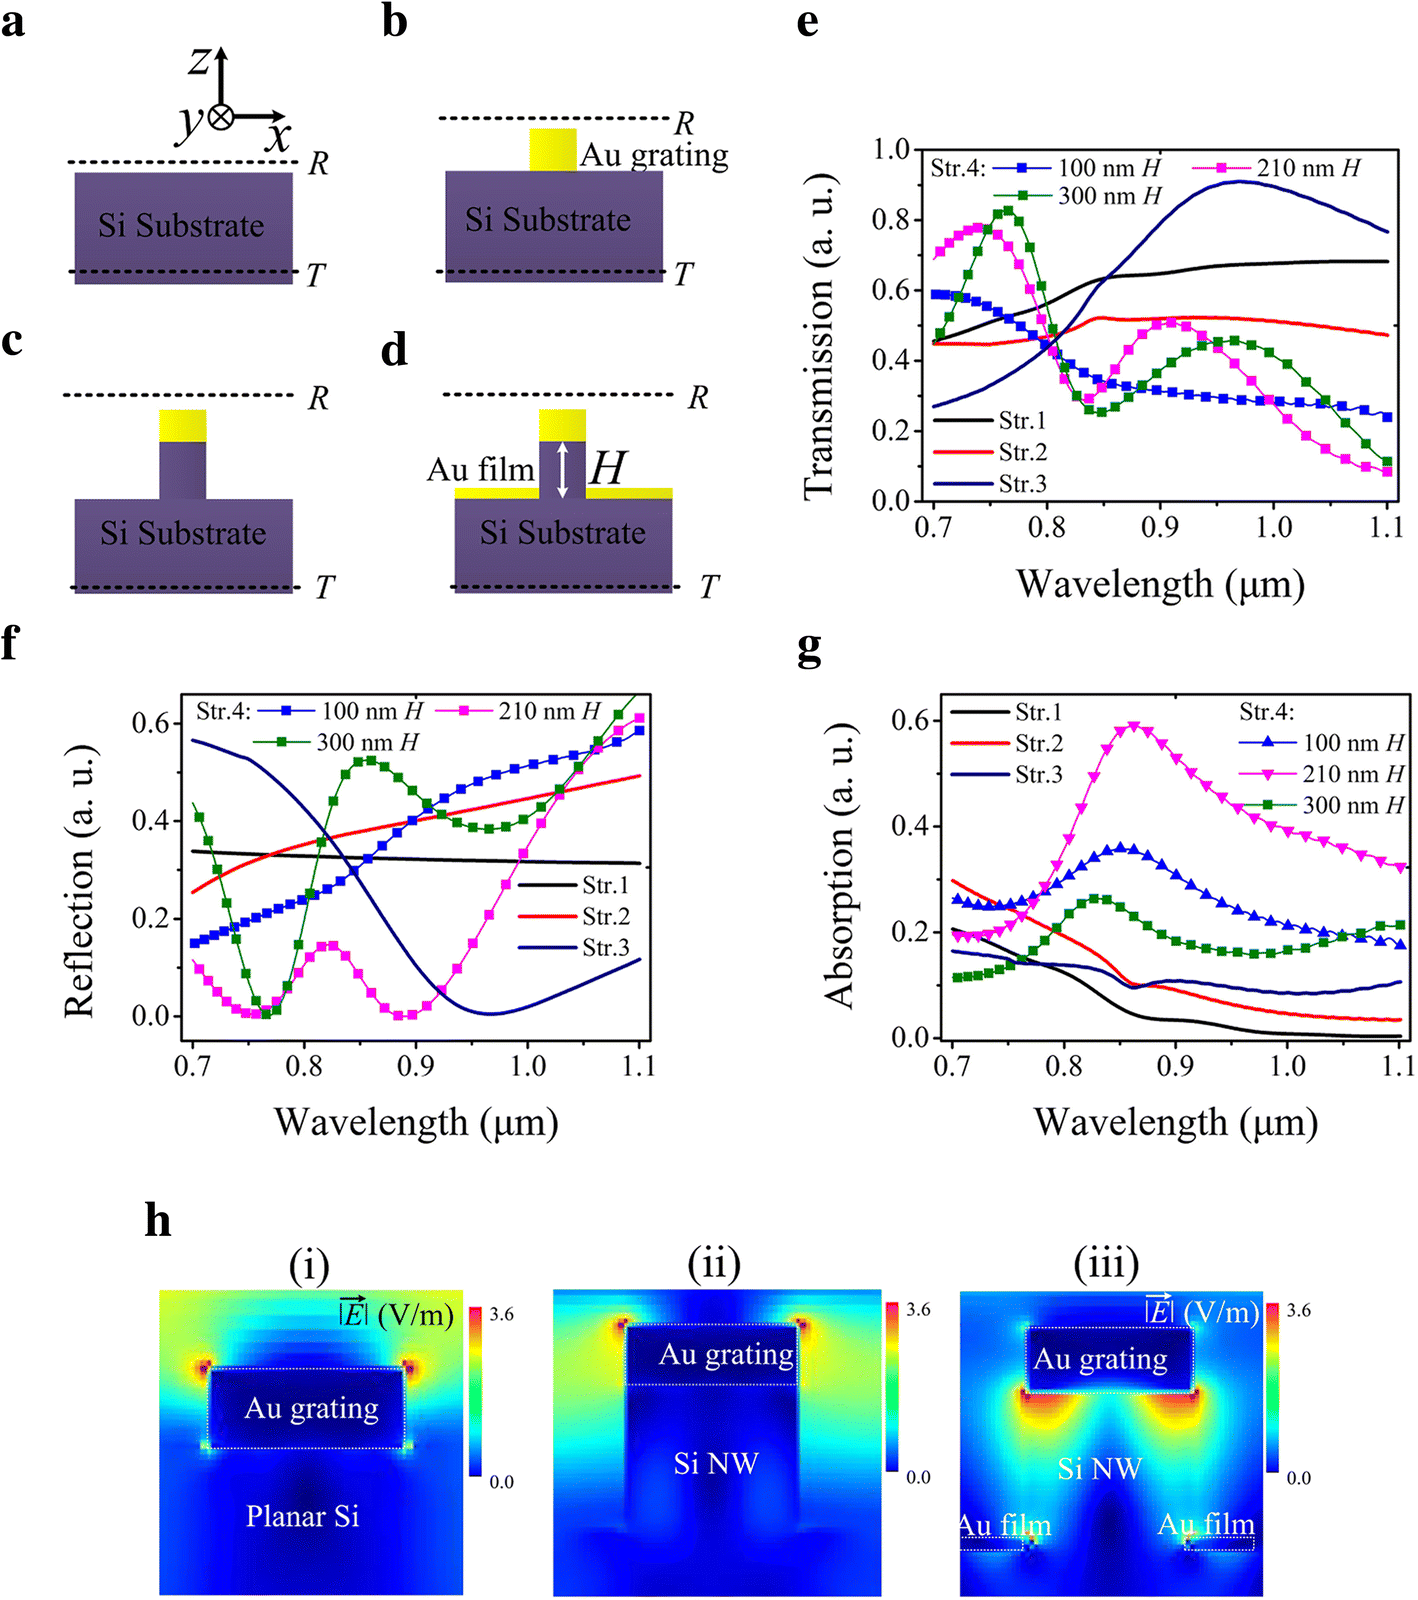 all si photodetectors a resonant cavity for near infrared open image in new window